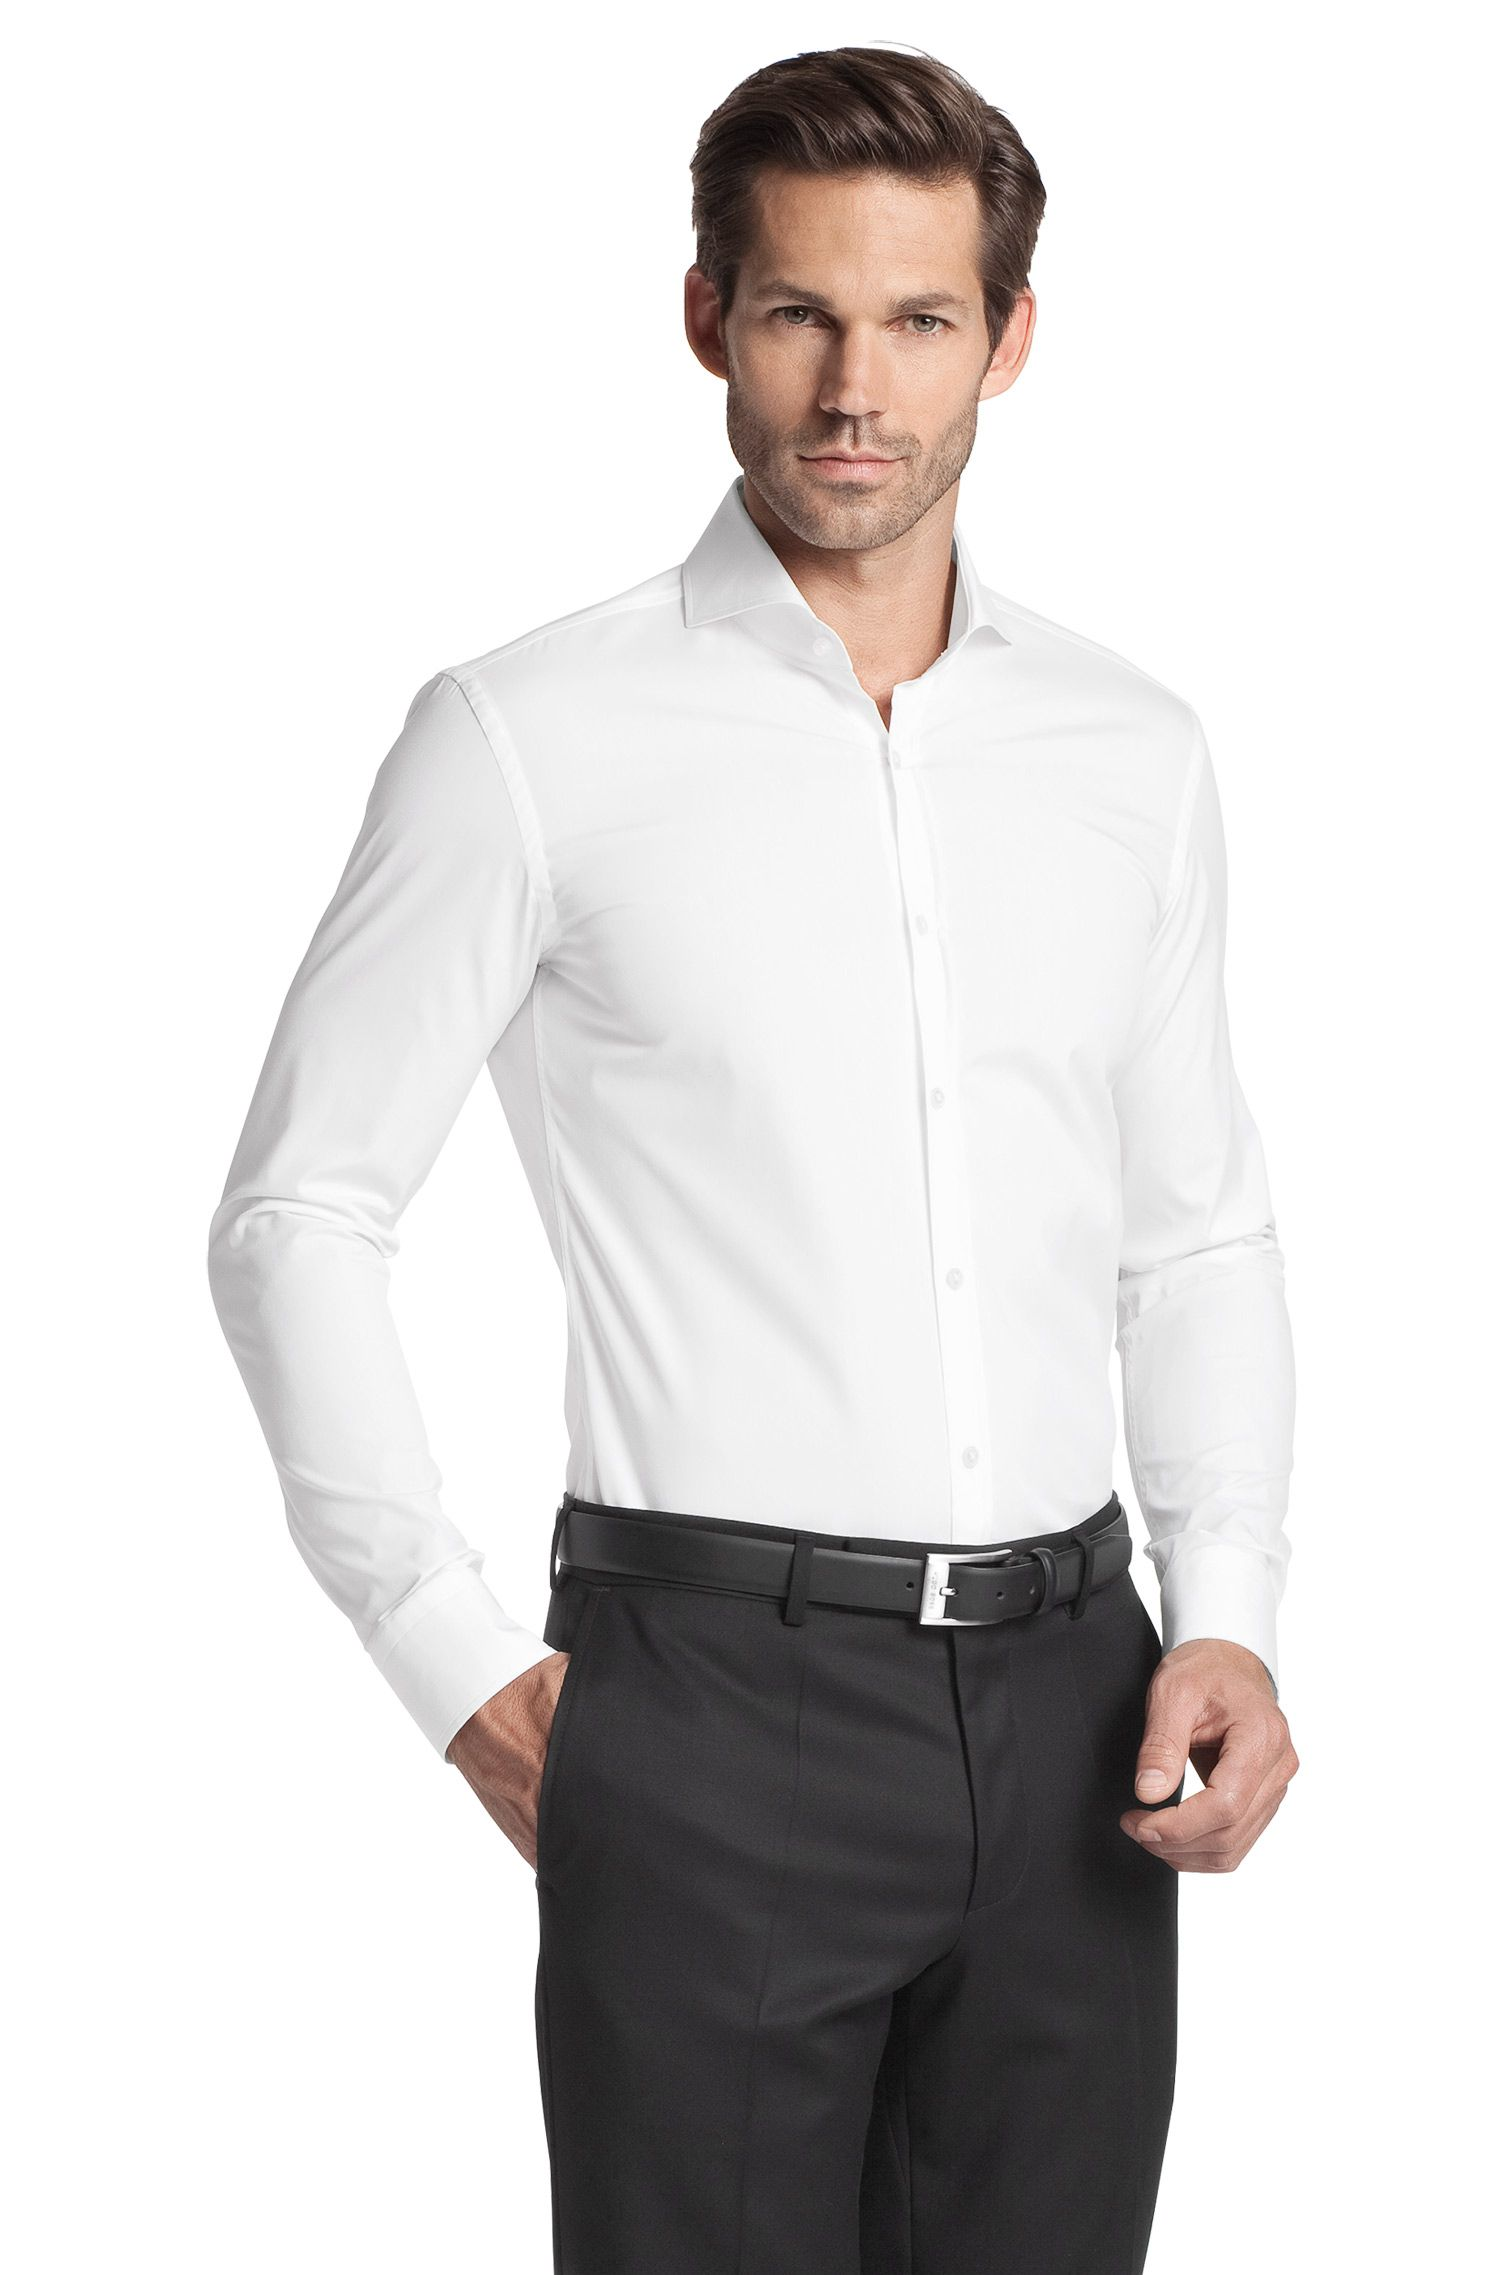 Chemise business à col requin, Helge